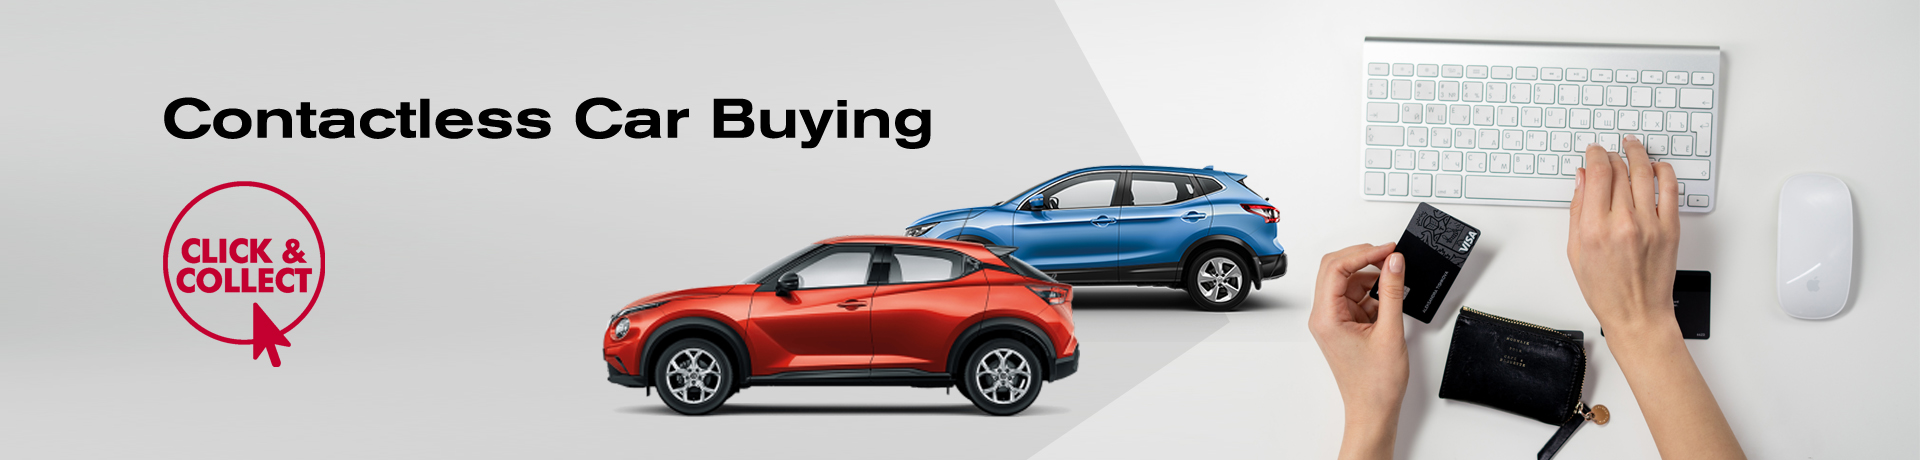 Contactless-Car-Buying-Nissan-Banner-Page-V2